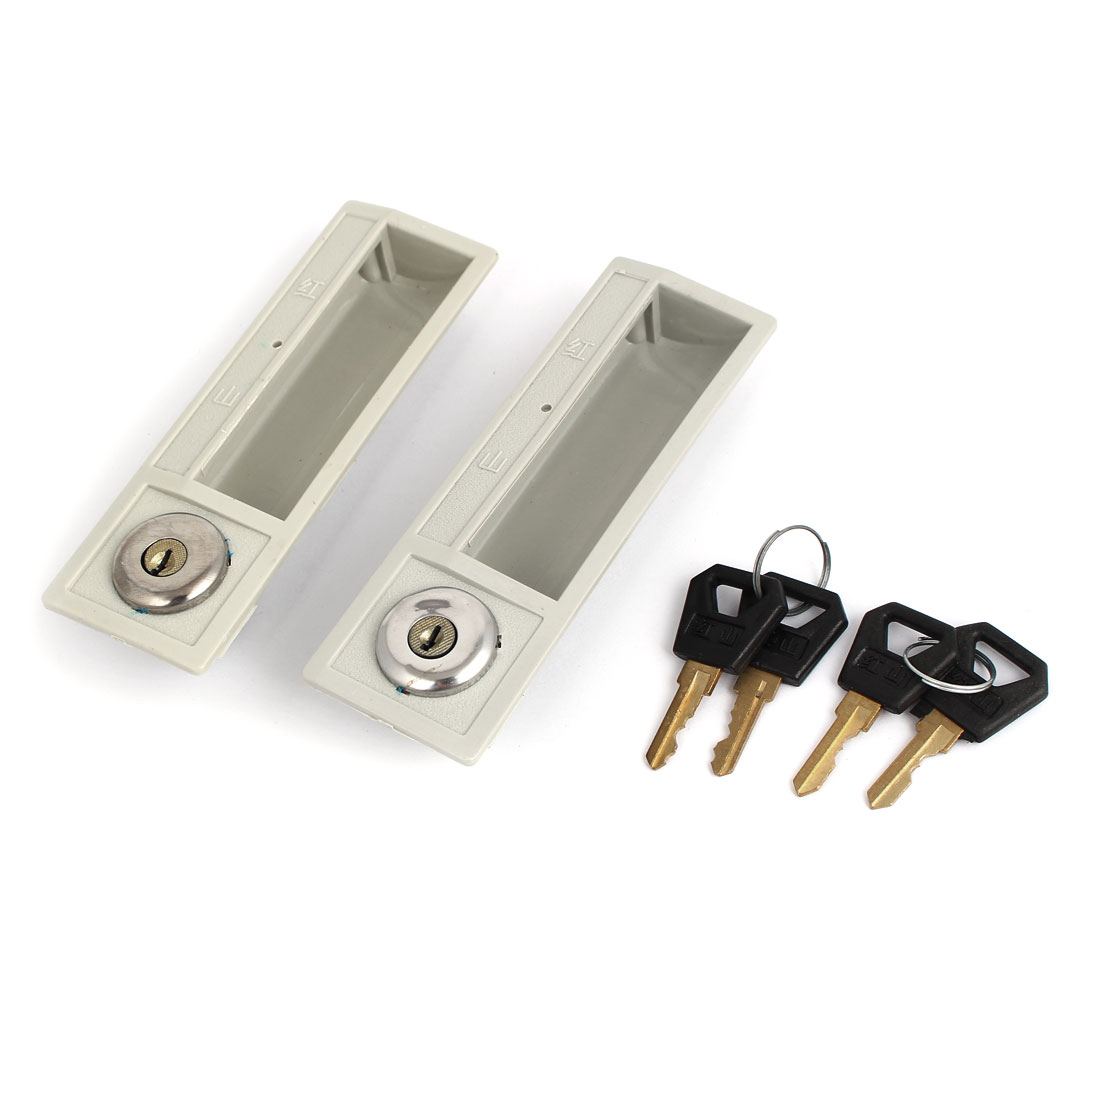 Cabinet Cupboard Door Security Plactic Lock 2pcs w 4 Keys